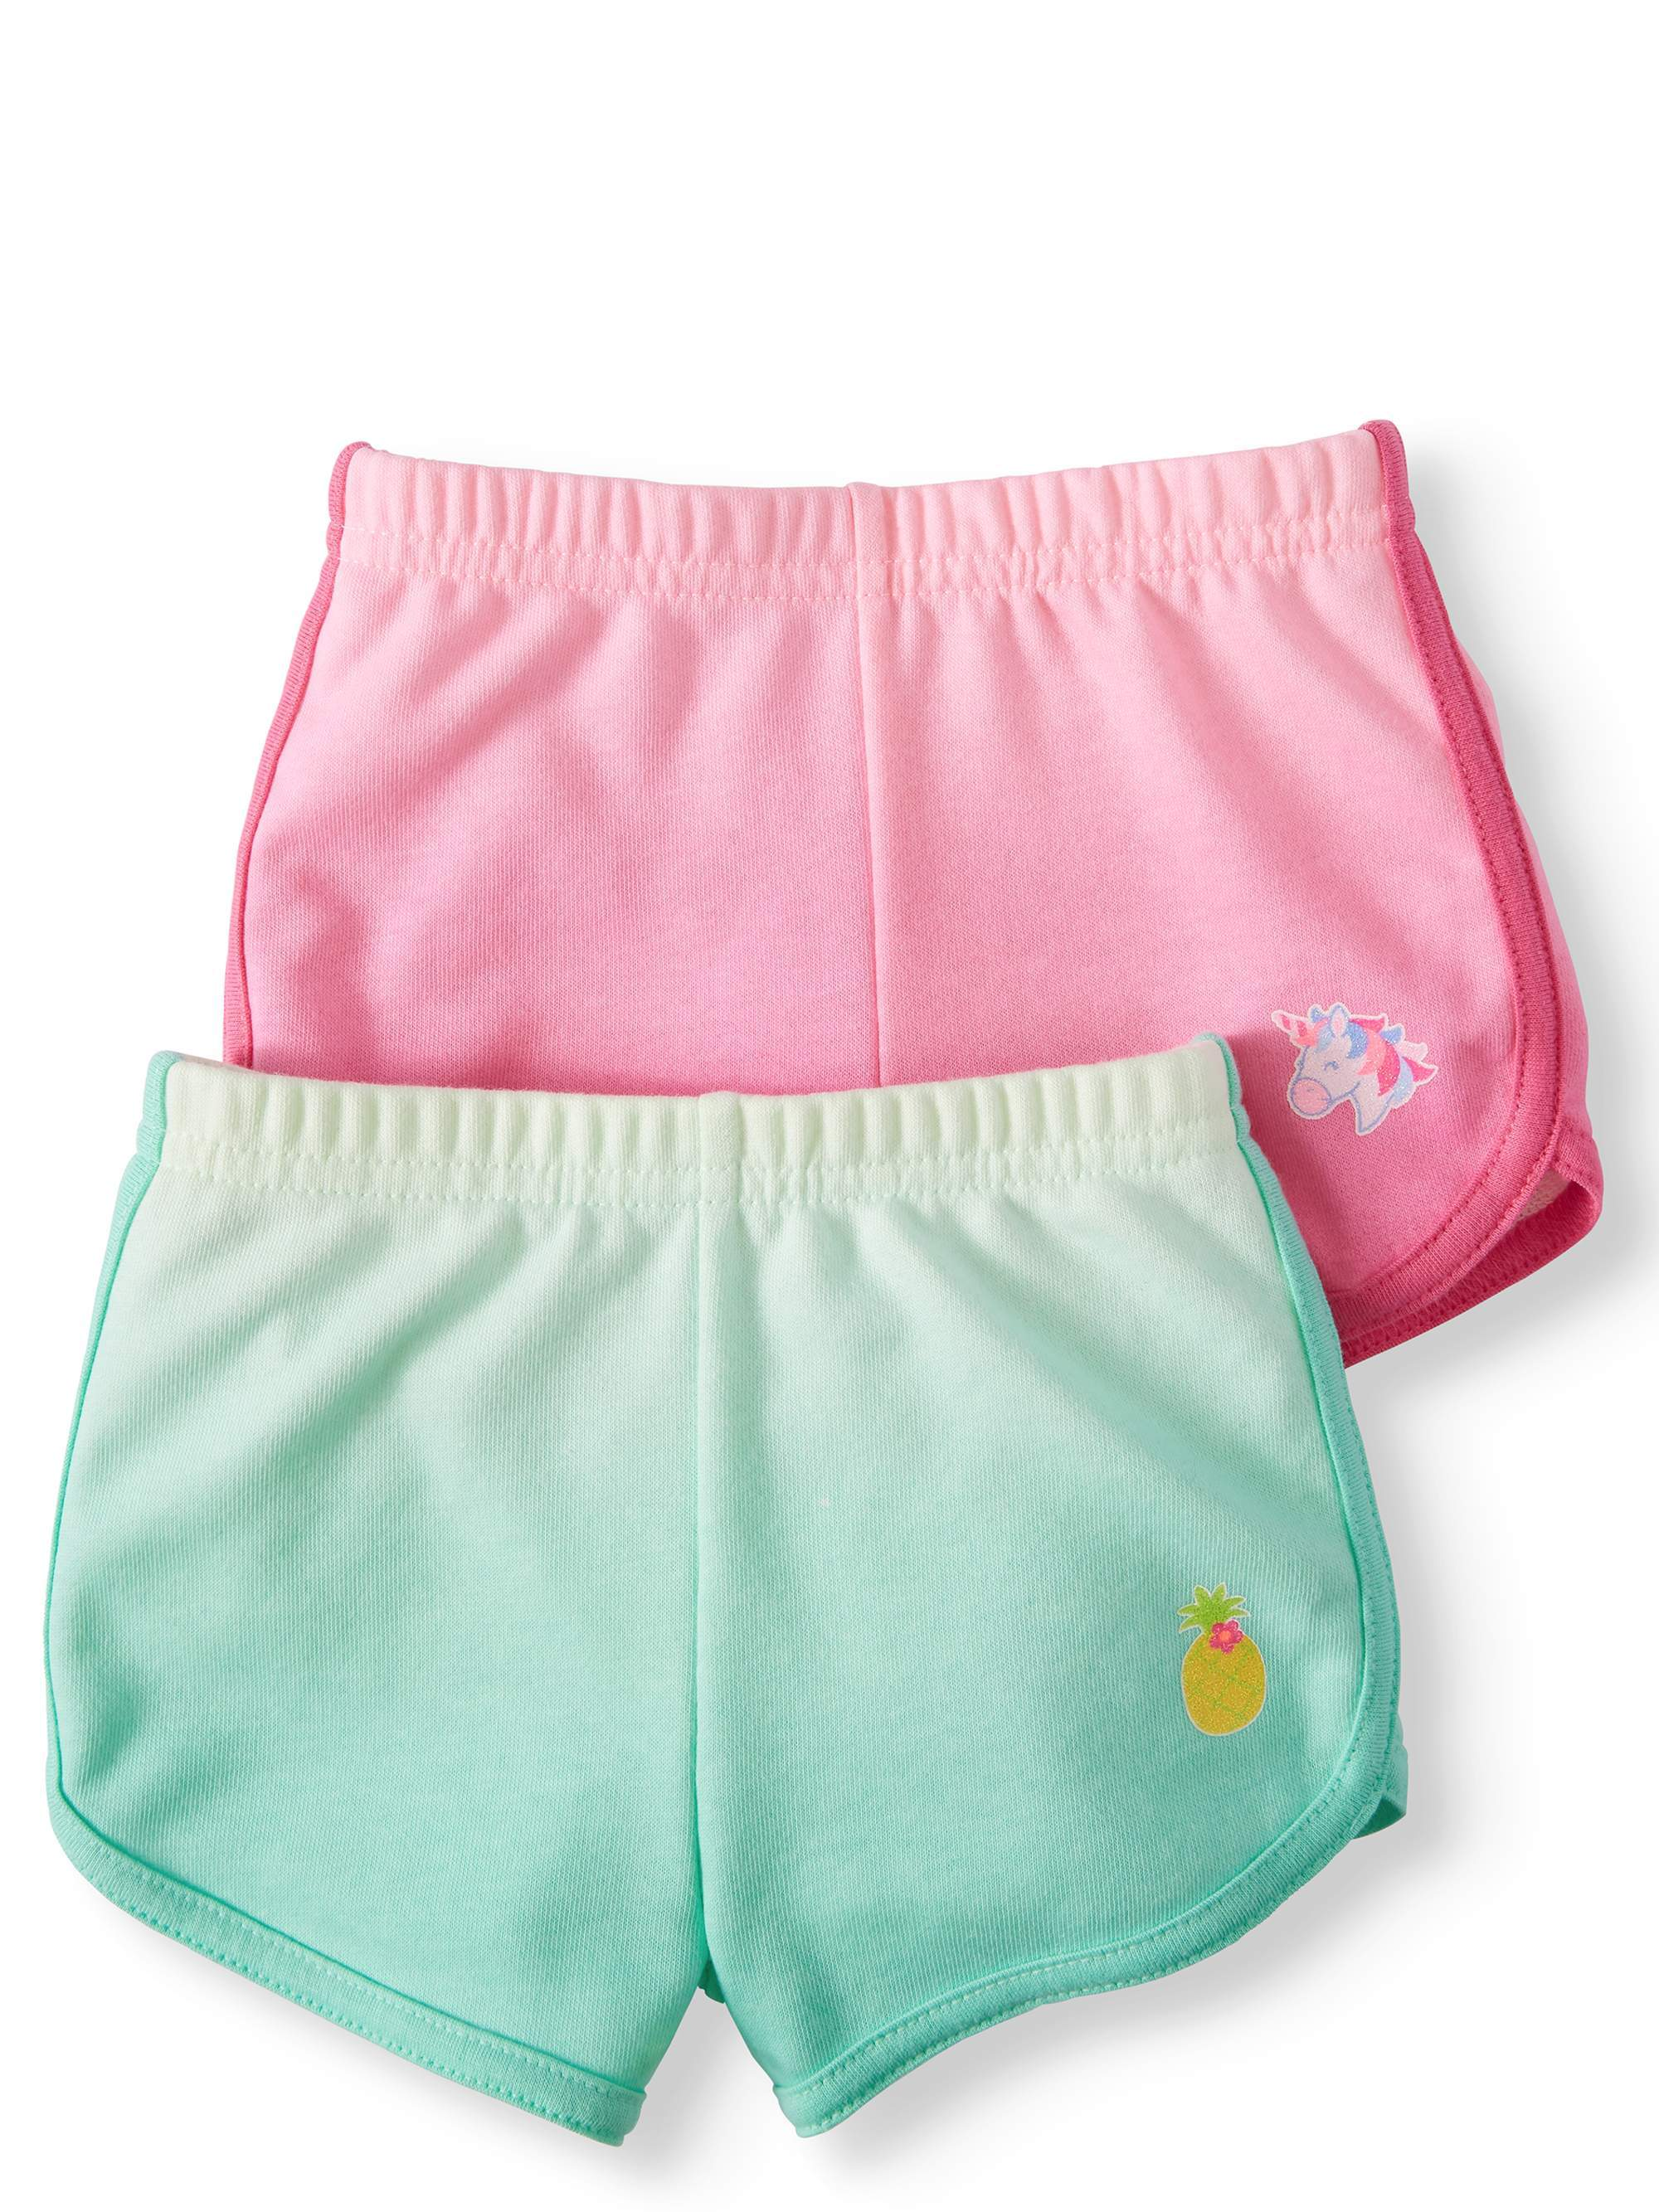 Garanimals Baby Girl French Terry Dolphin Shorts, 2pc Multi-Pack